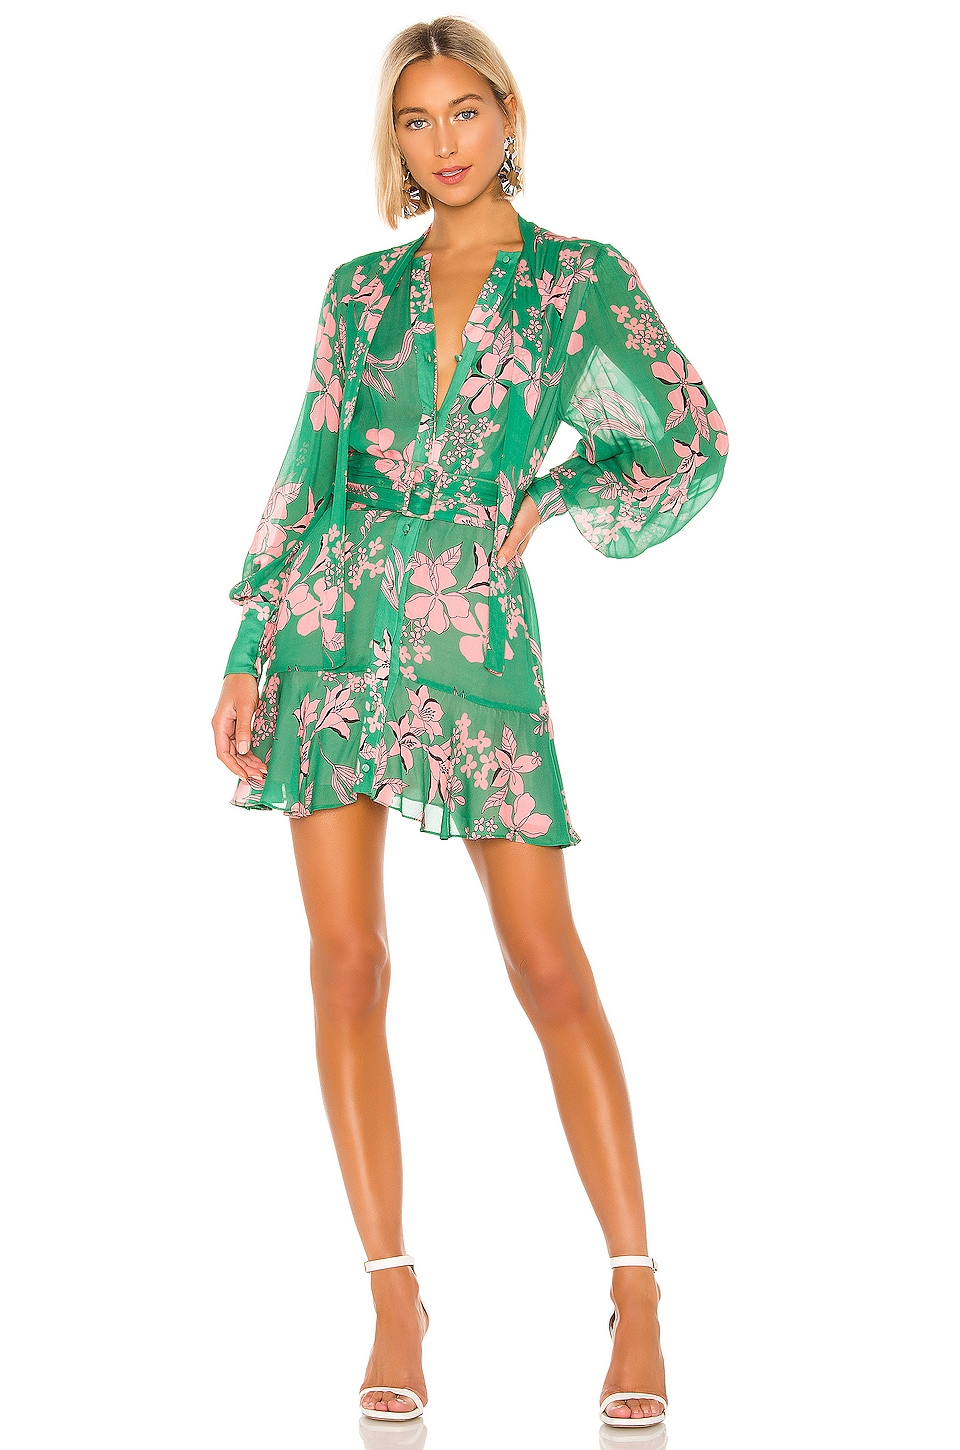 Alexis Tisdale Dress in Island Floral